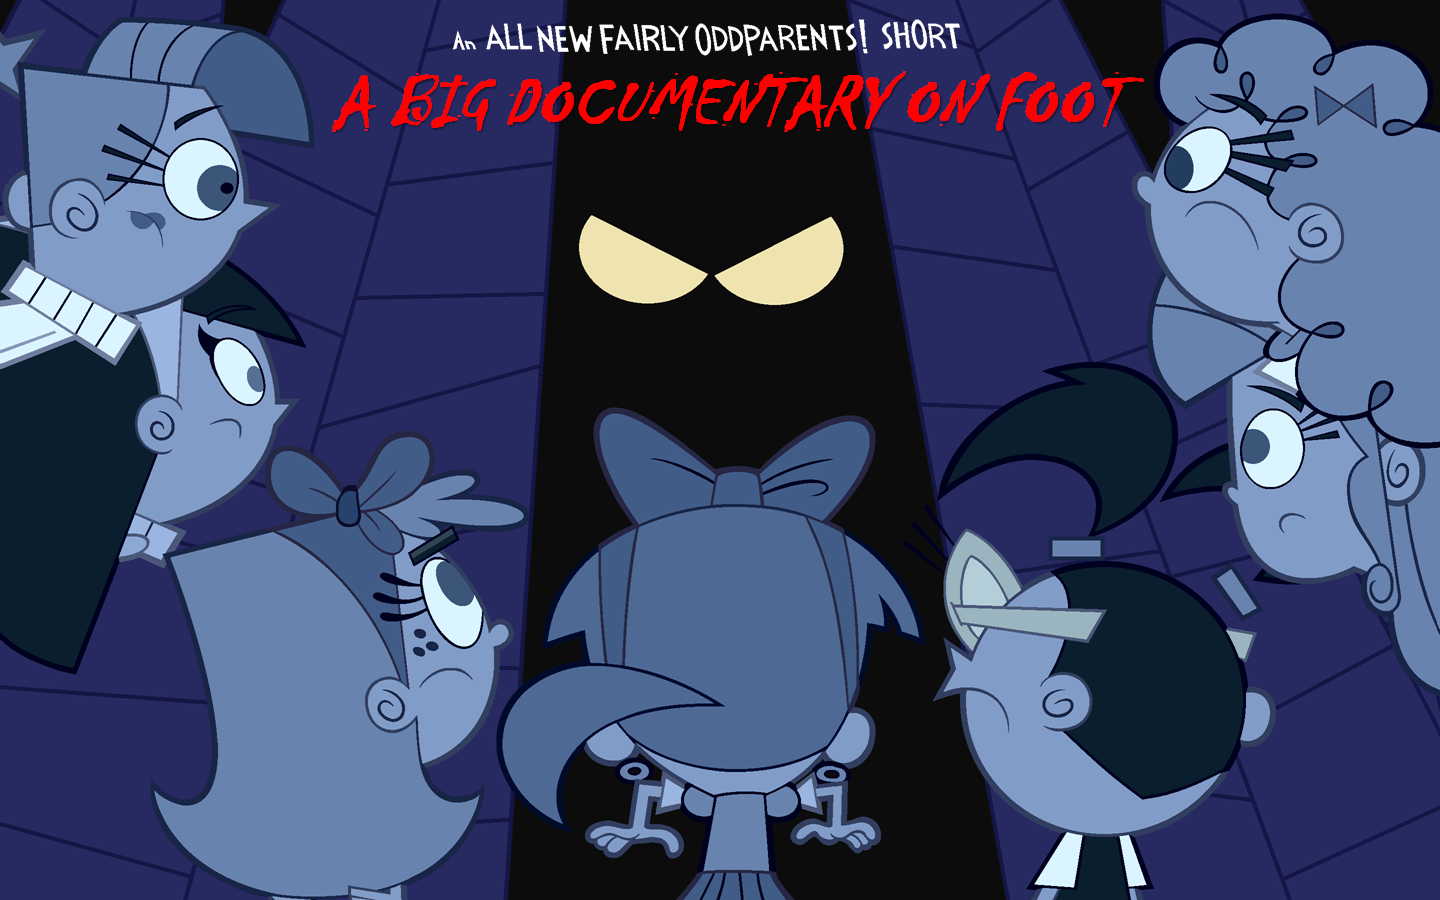 A Big Documentary on Foot